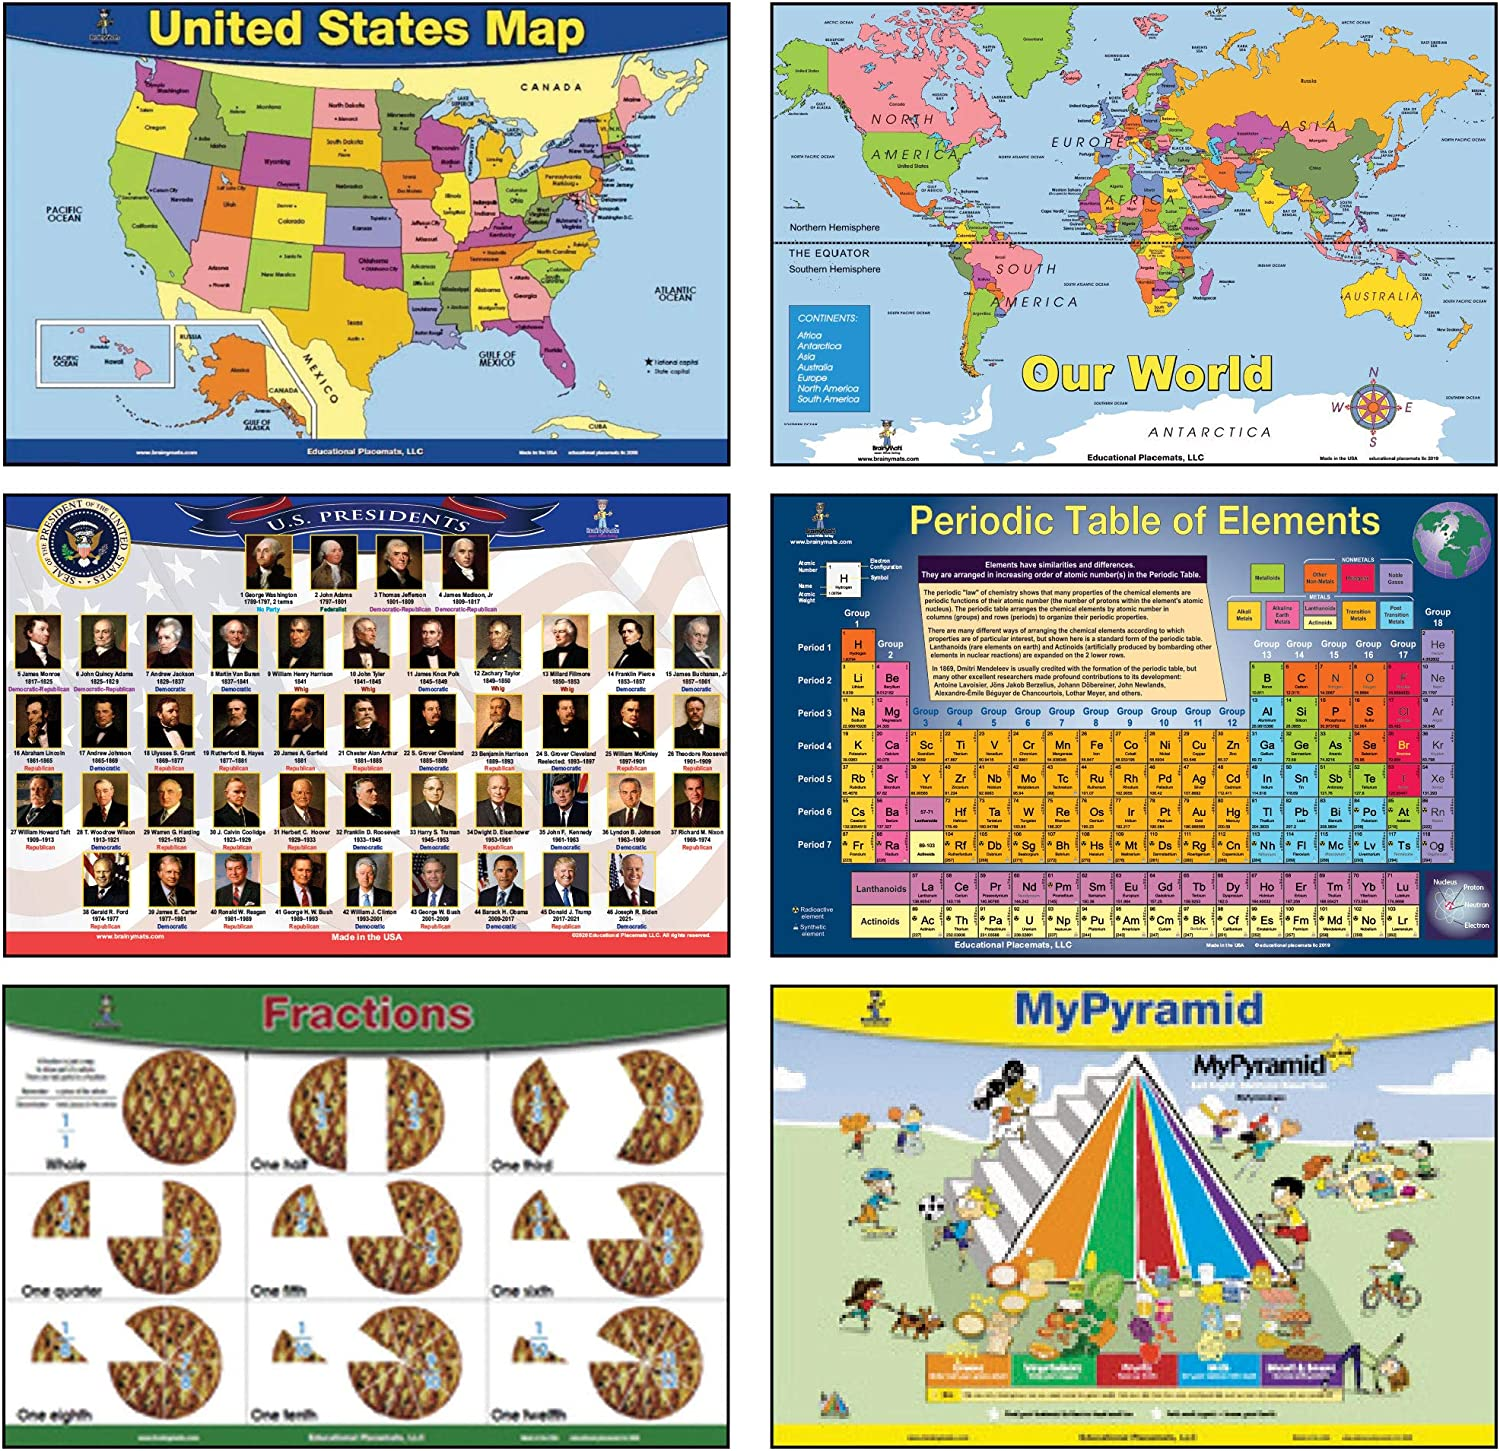 Brainy Mats Educational Kids Placemats (Explorer) Set Includes 4 Mats Plus 2 Includes Presidents with Joe Biden, USA Map, World Map, Periodic Table Plus 2 no Charge – Fractions and Food Pyramid